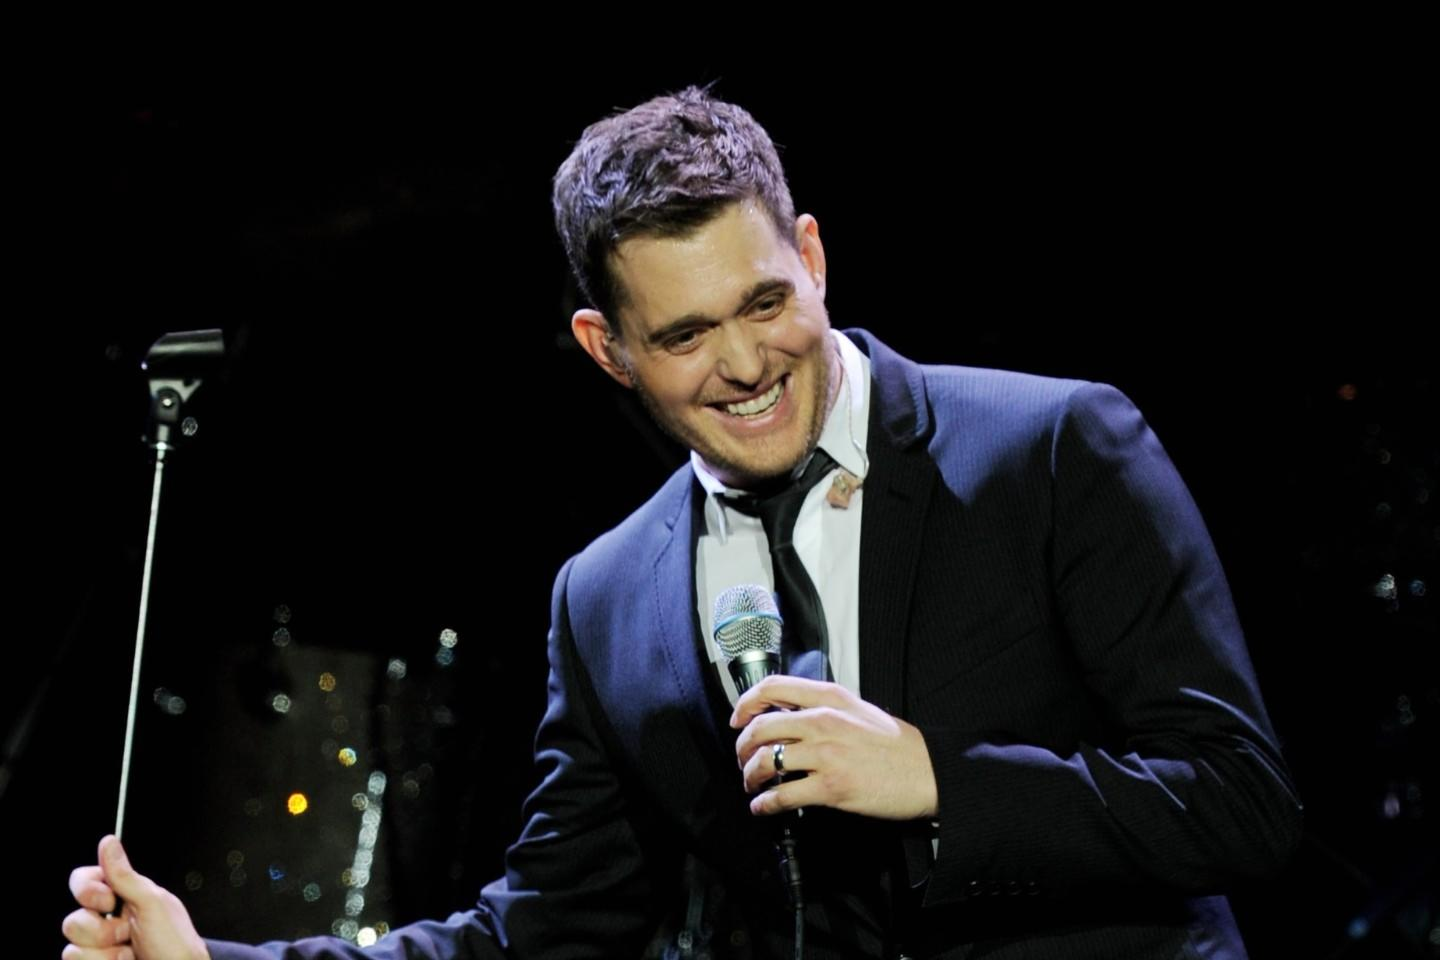 Michael Buble Tickets | Michael Buble Tour 2020 and Concert Tickets